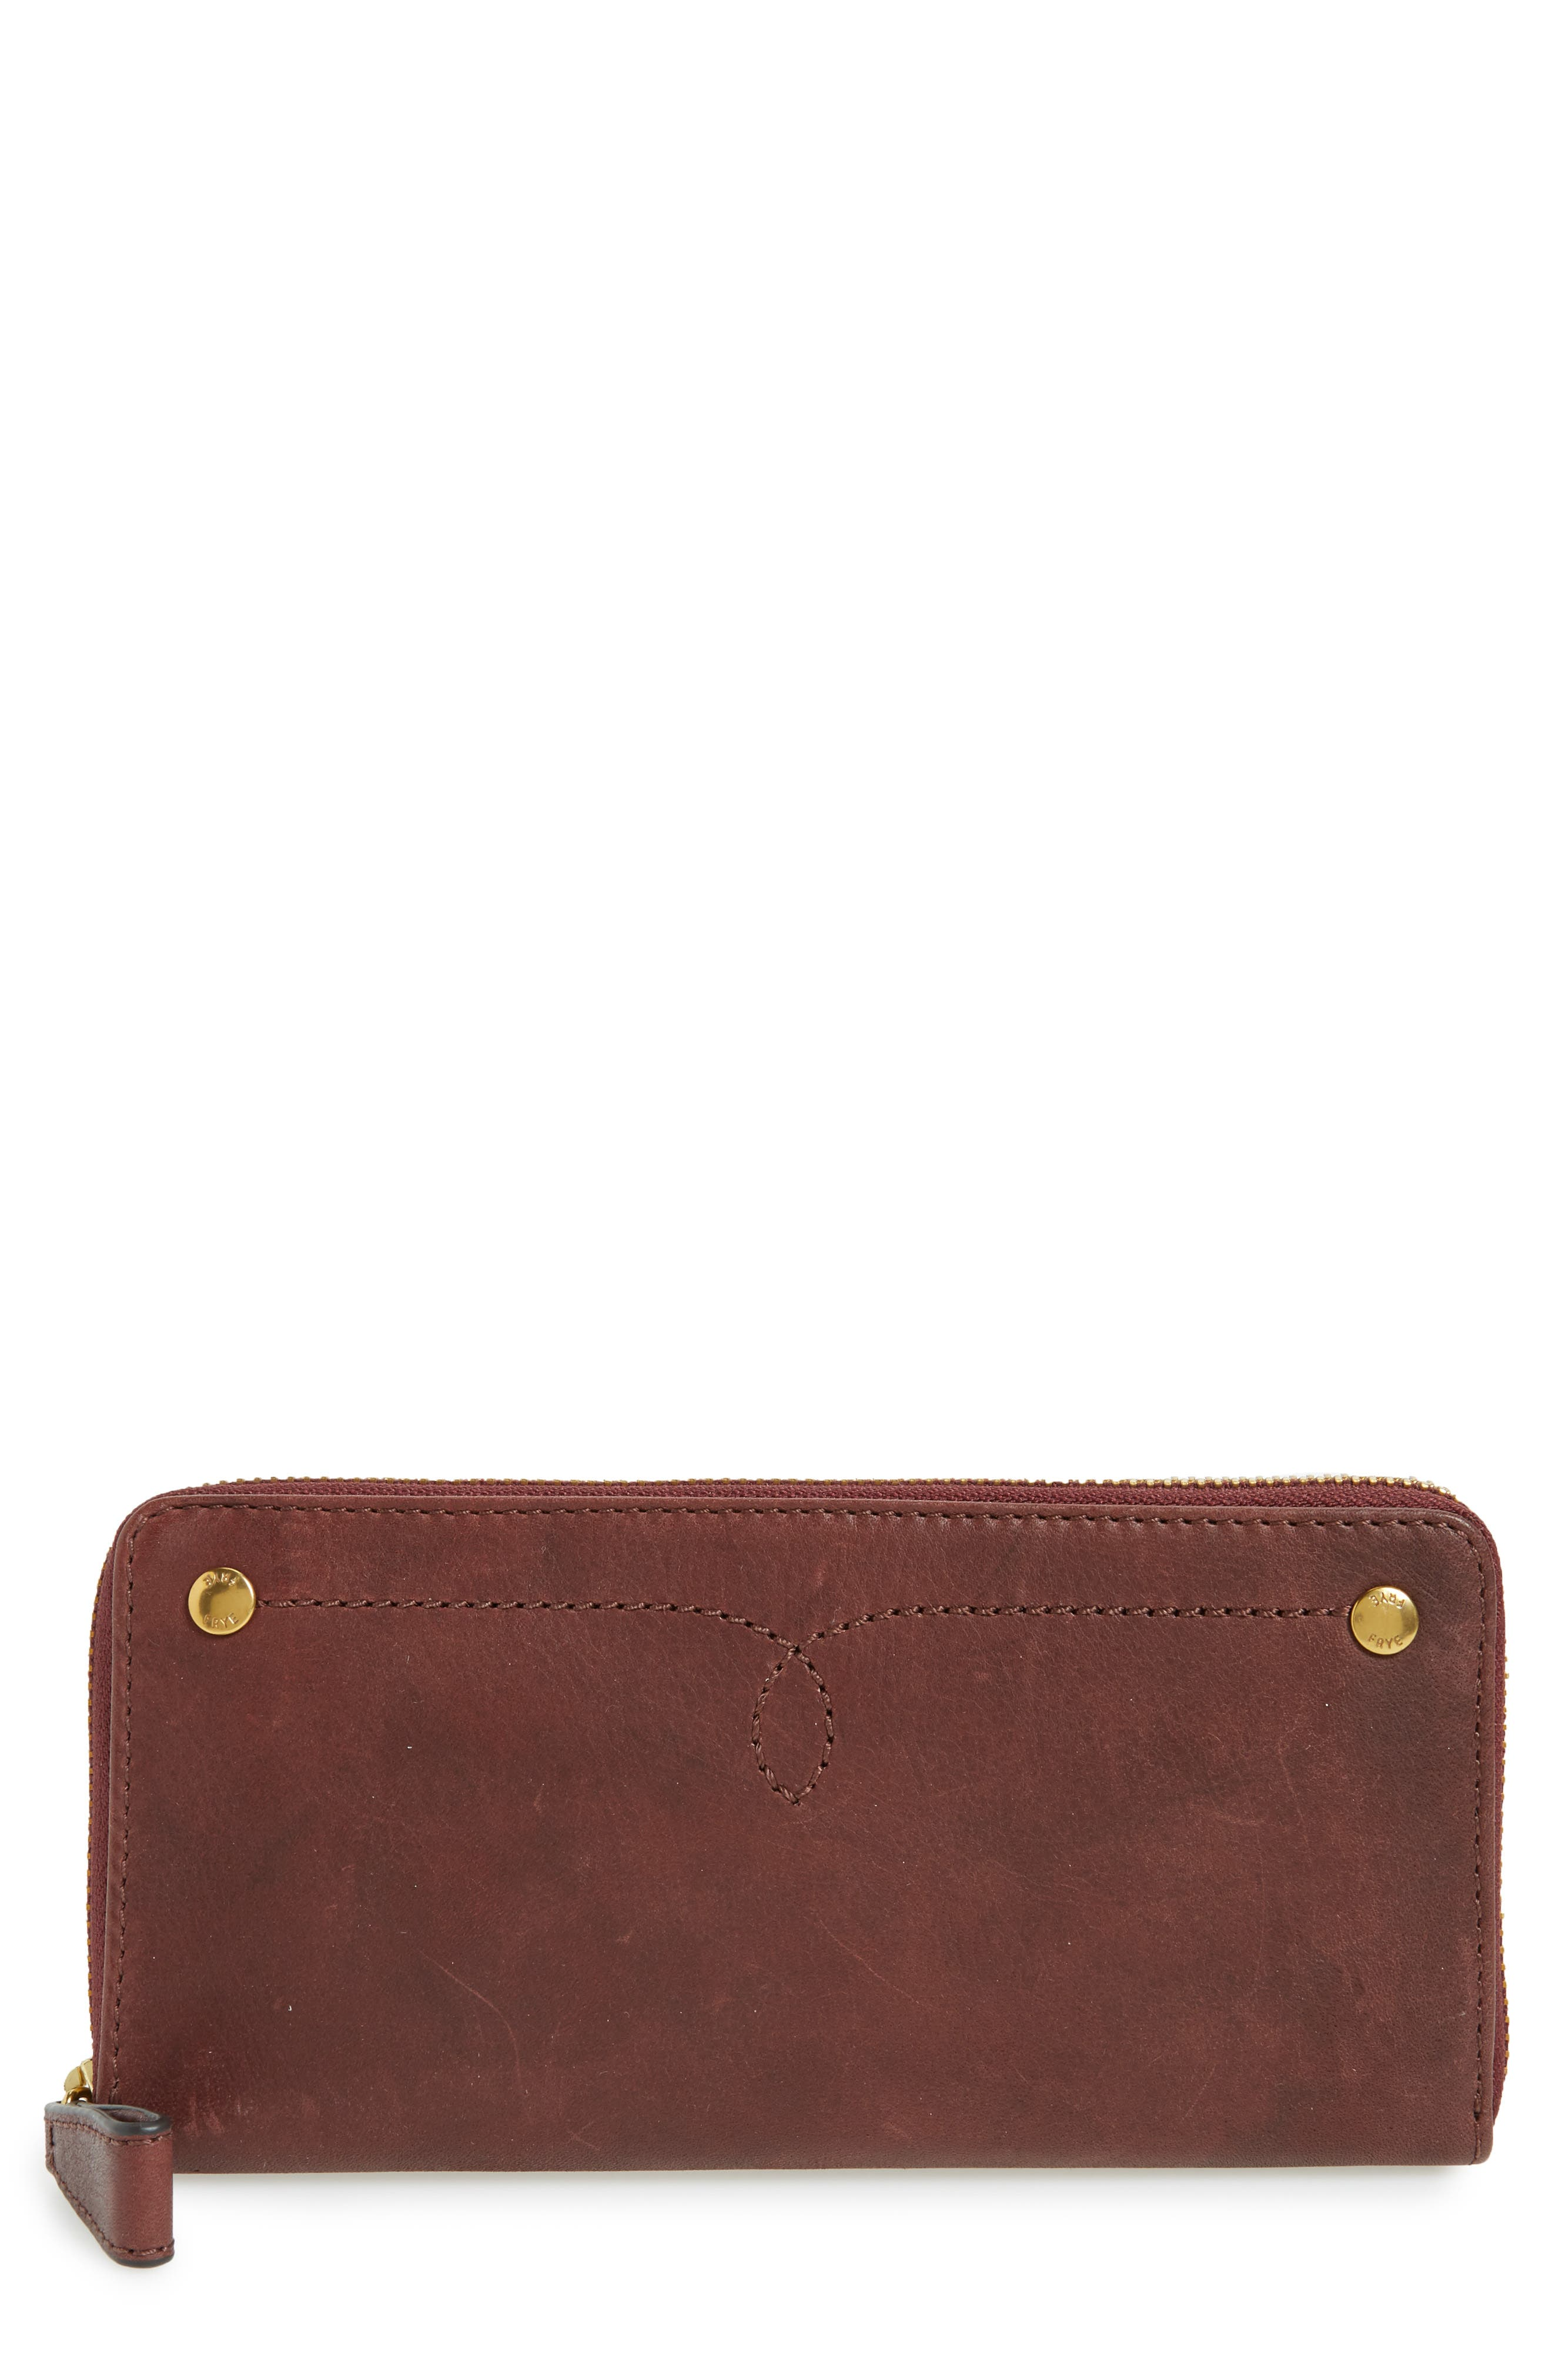 Campus Rivet Leather Continental Zip Wallet,                             Main thumbnail 1, color,                             Black Cherry